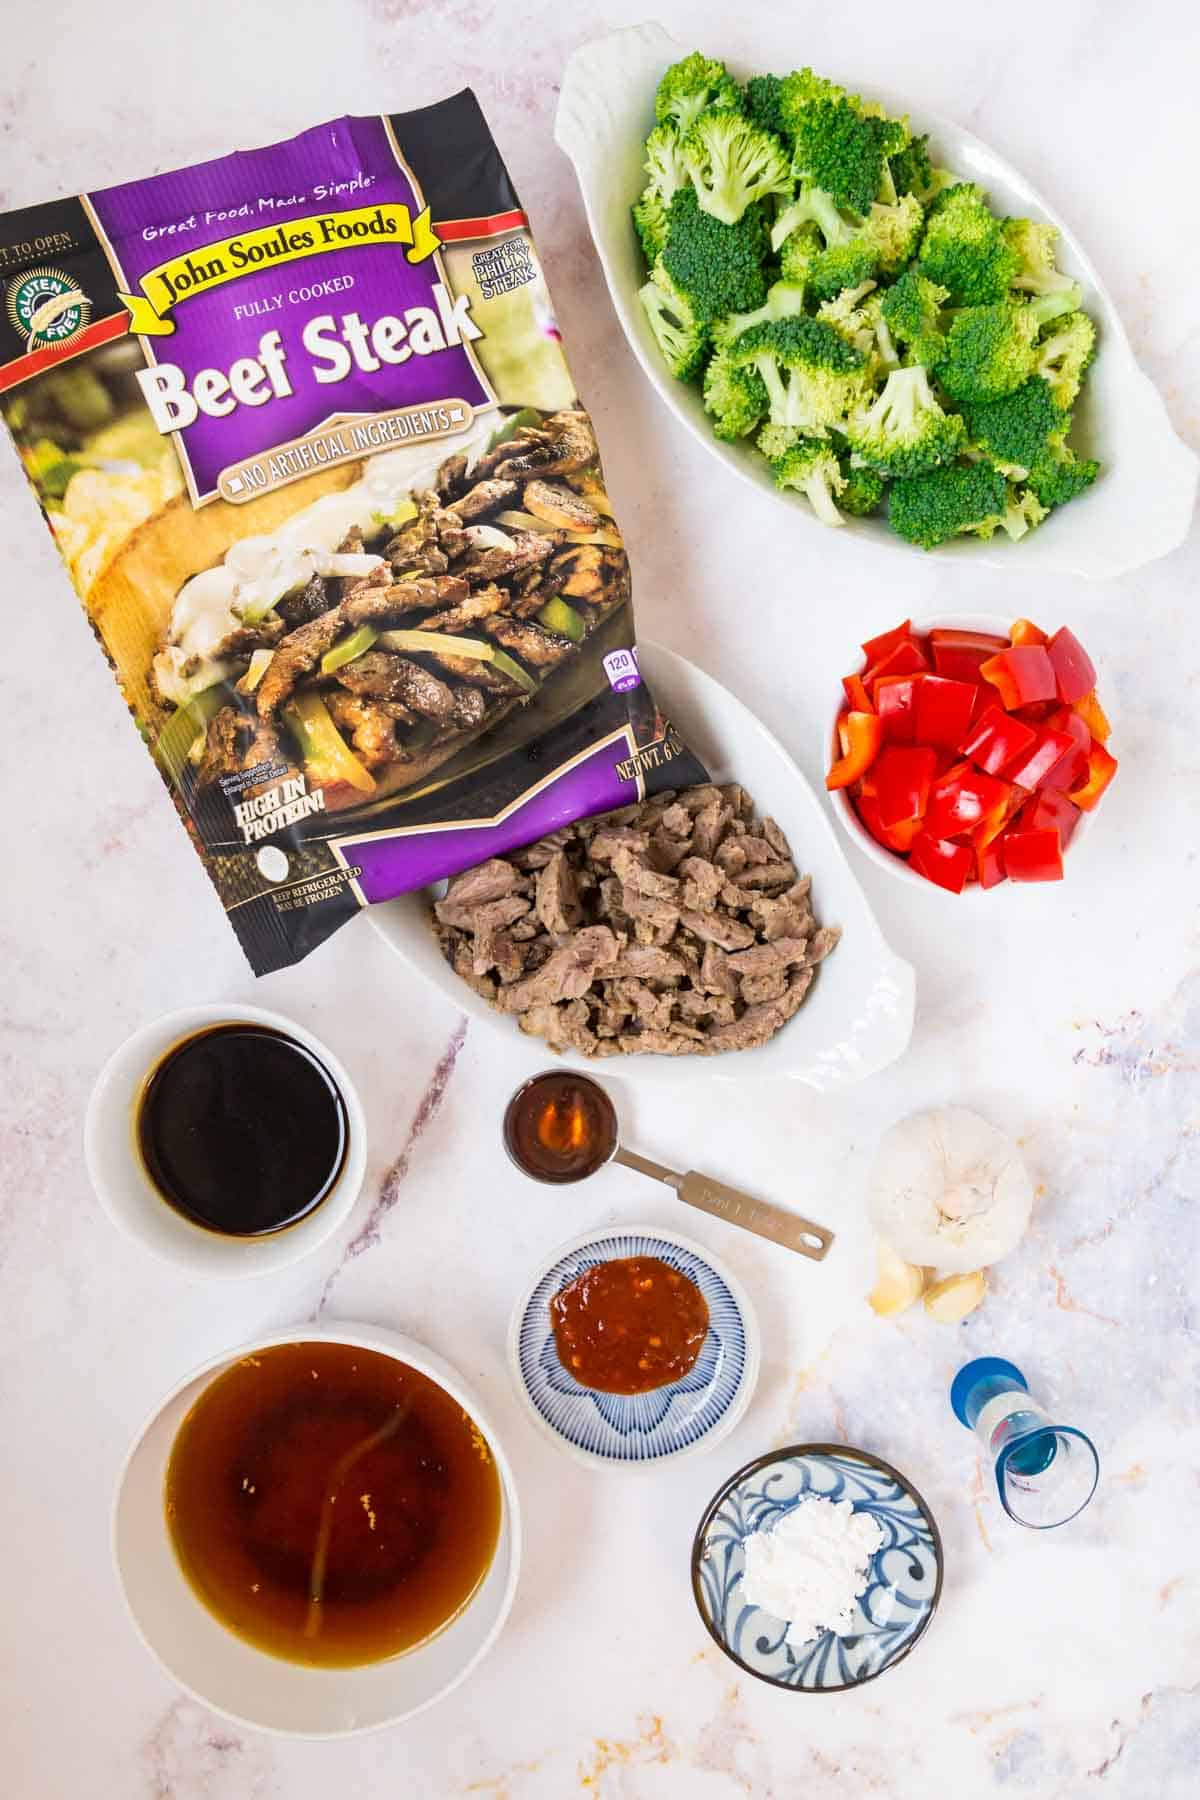 a package of John Soules Foods beef steak plus bowls of beef broth, soy sauce, chili paste, cornstarch, honey, oil, broccoli florets, and chopped red pepper and some garlic cloves